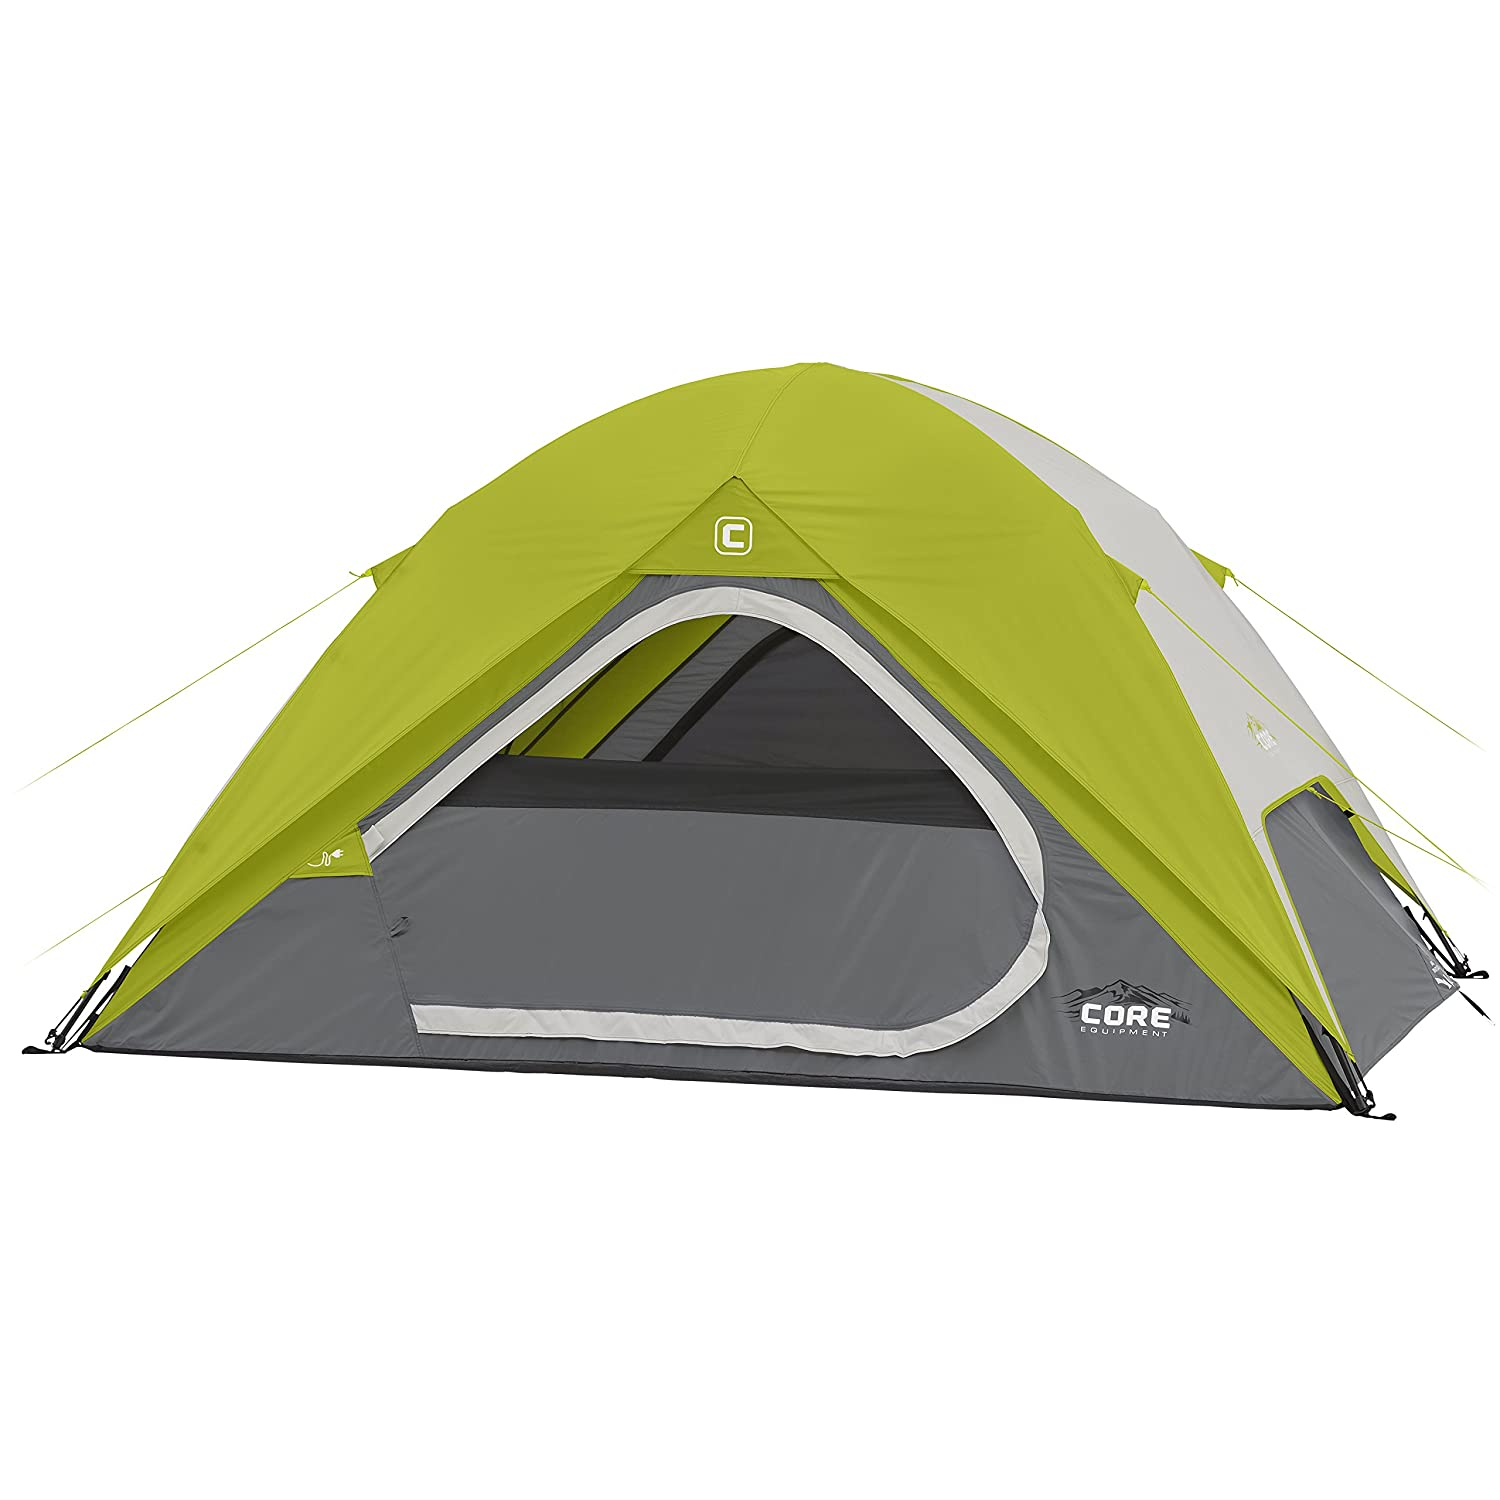 What is The Easiest Tent to Set Up by Yourself